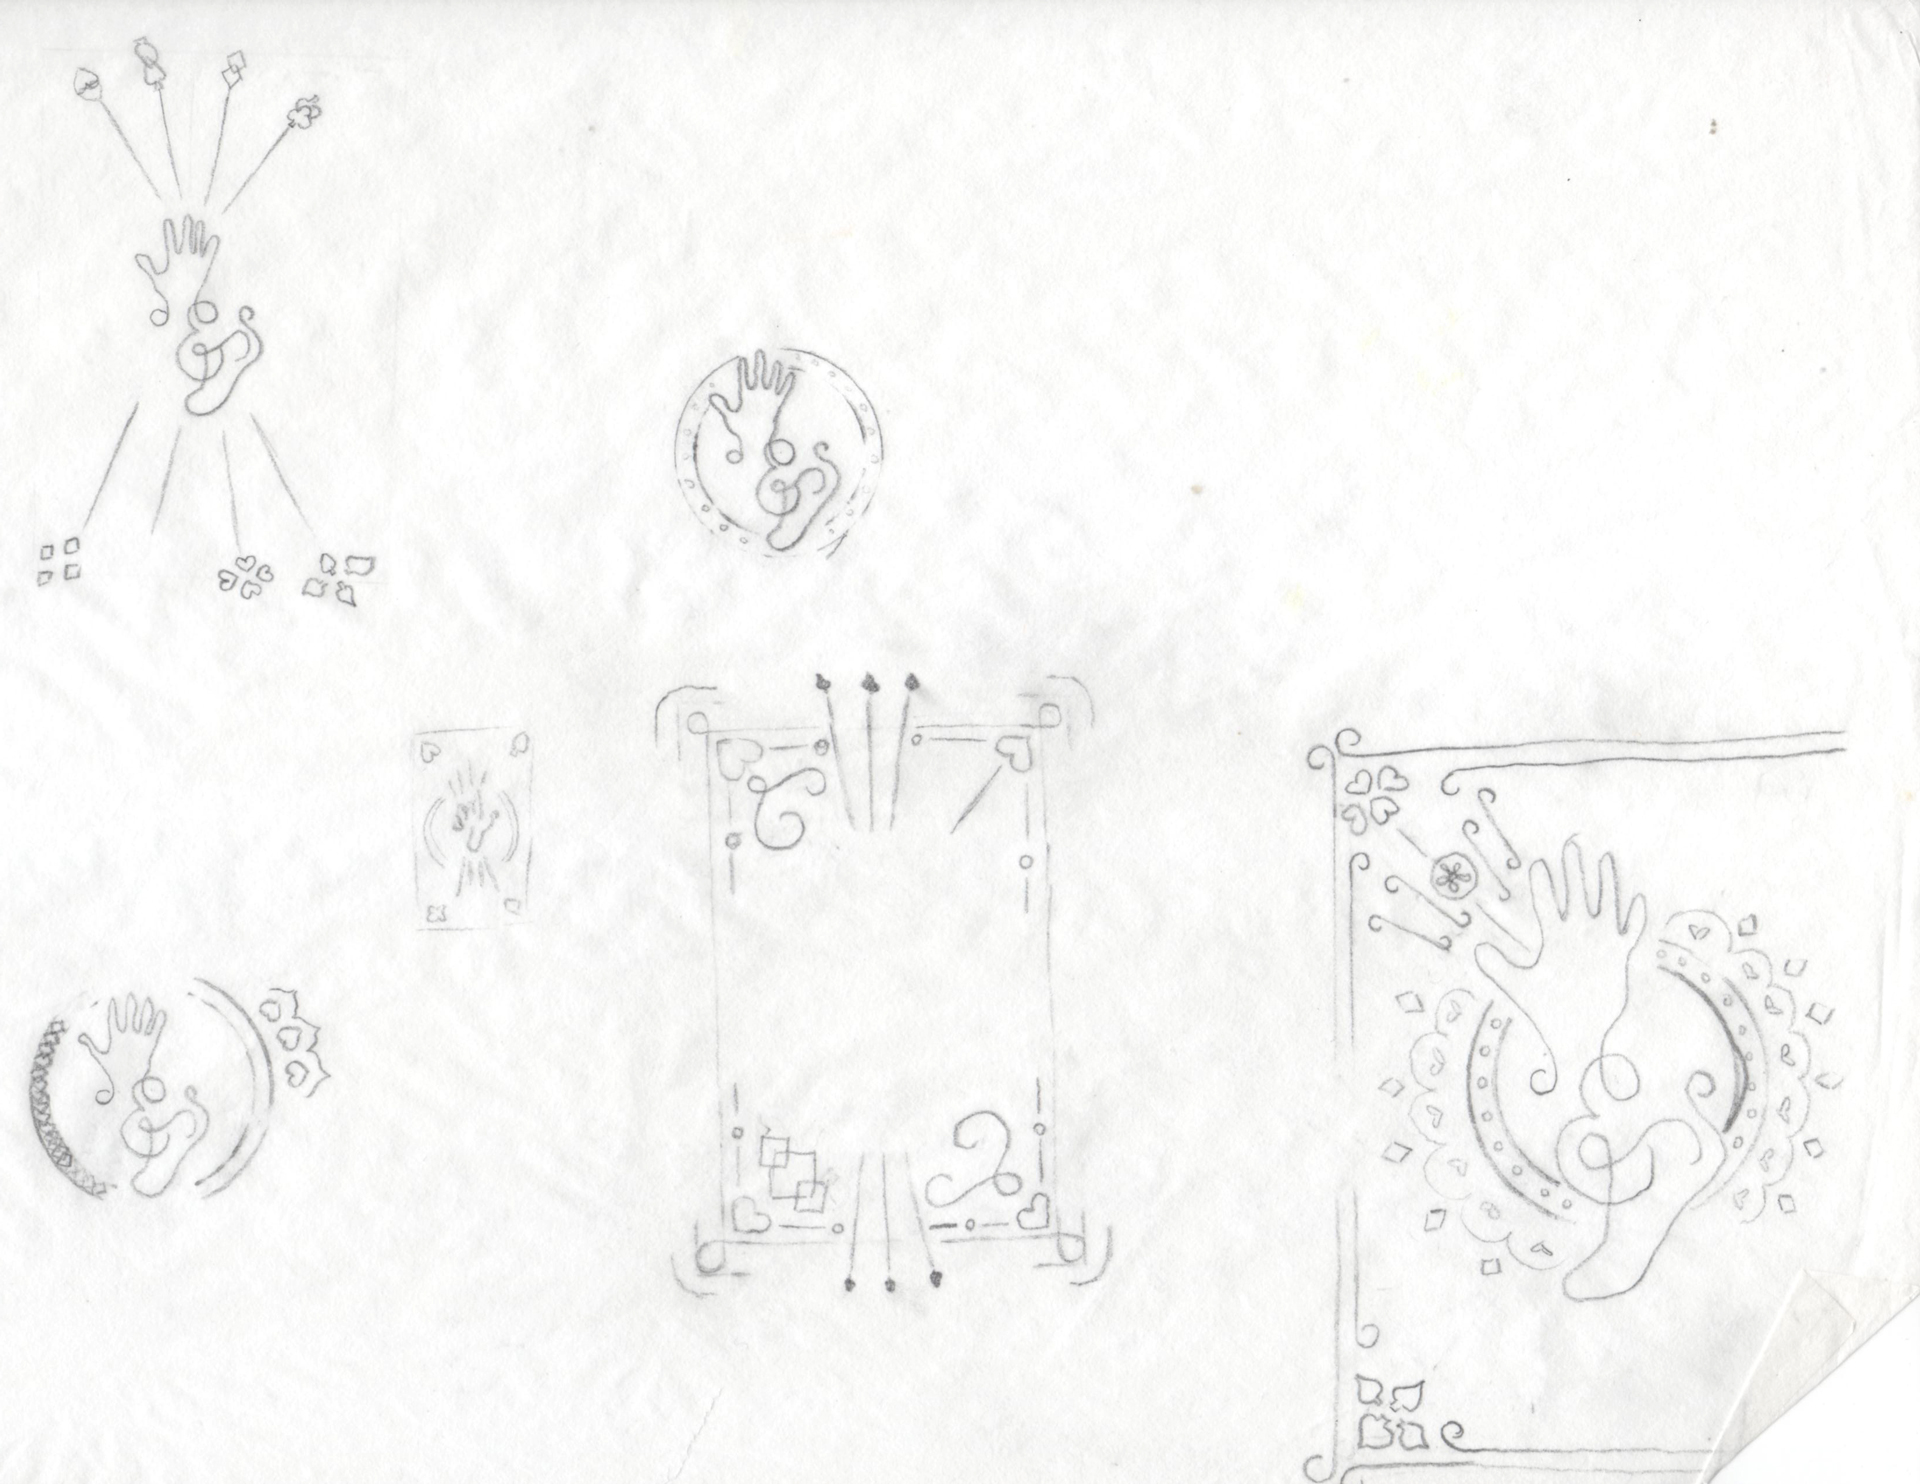 Sketches of hand and foot card back layouts